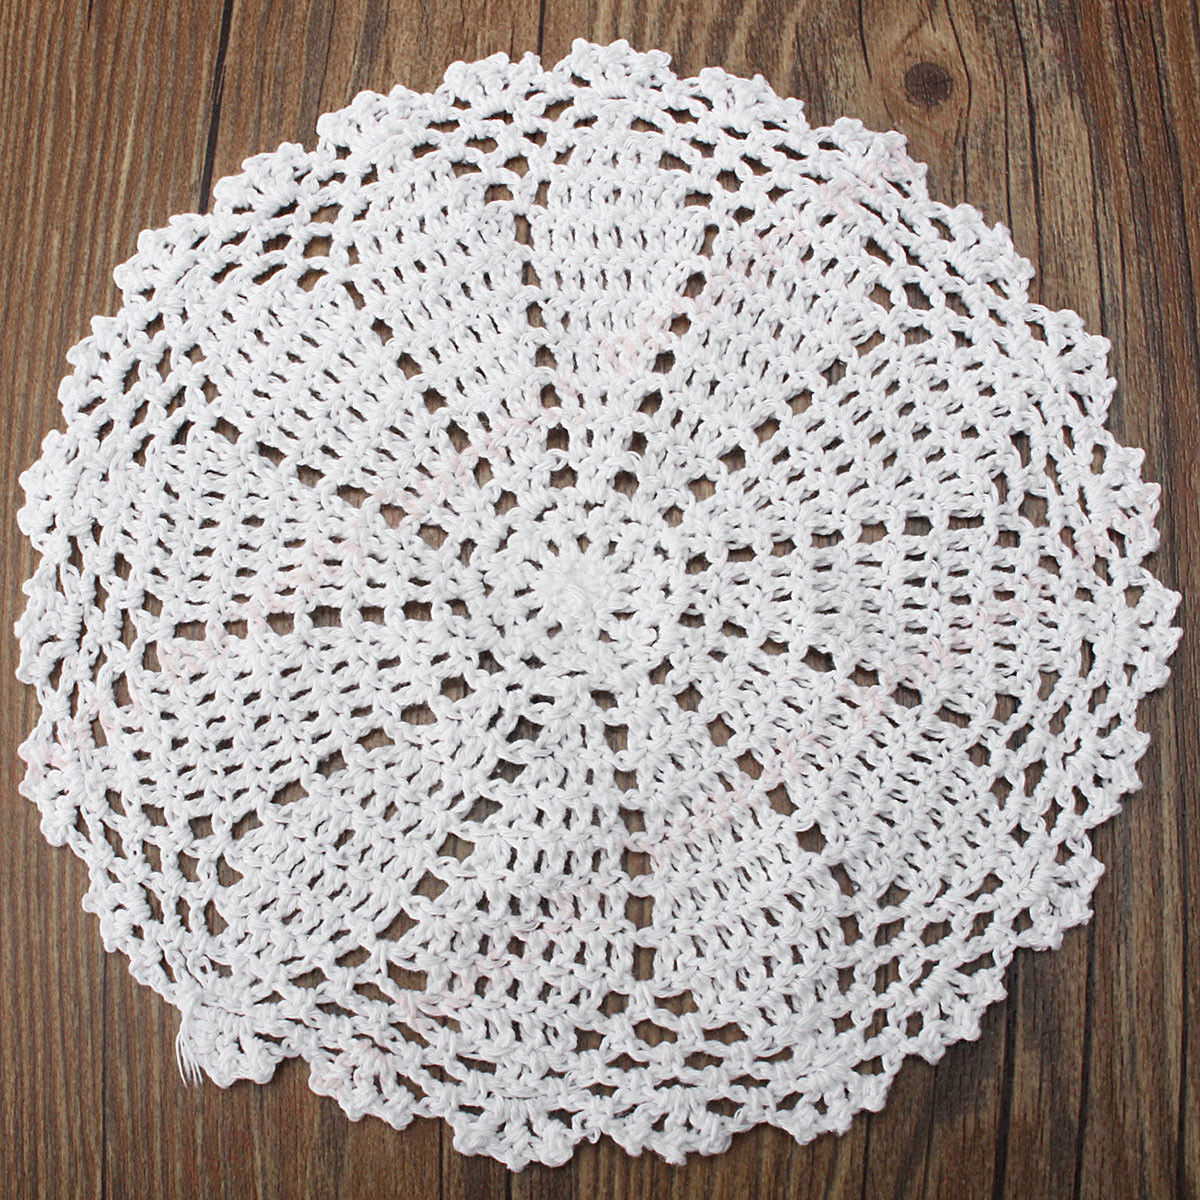 Handmade Doilies Awesome 8 Cotton Yarn Hand Crochet Lace Doily Placemat Round Of Unique 40 Pics Handmade Doilies